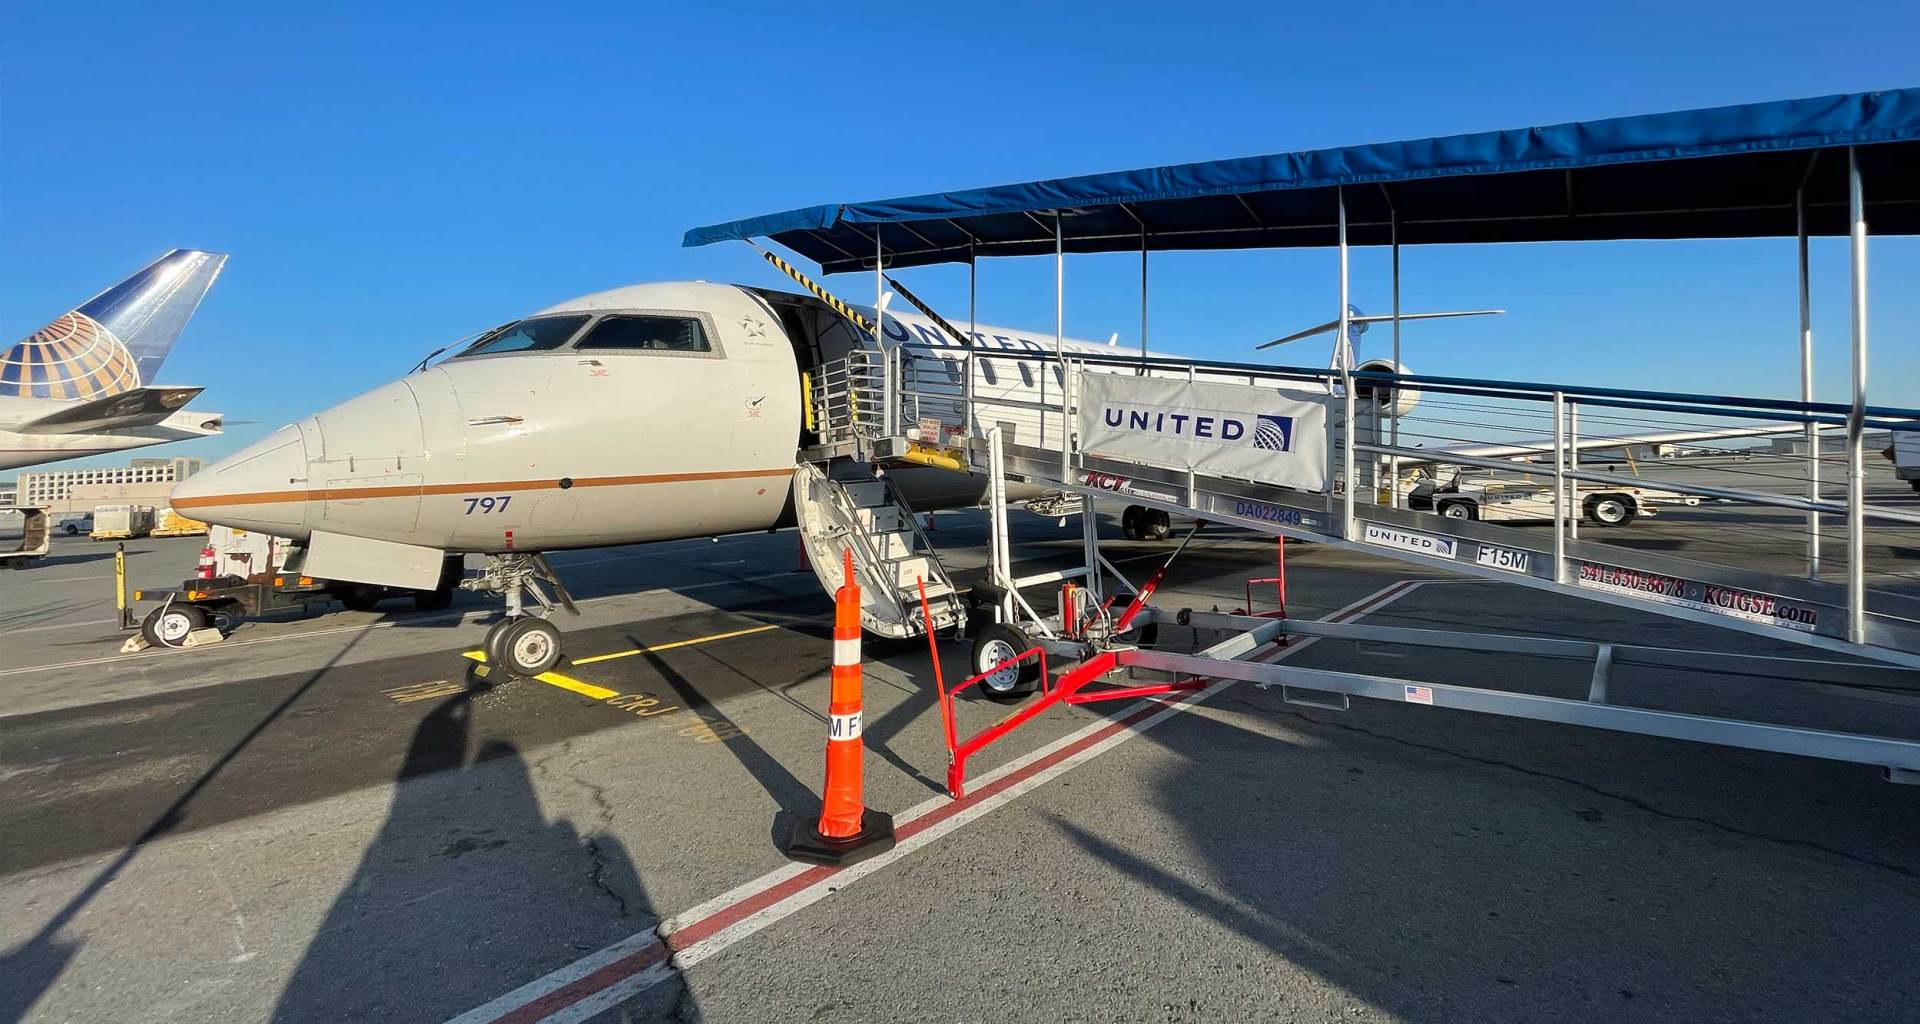 United CRJ-700 aircraft parked at San Francisco International Airport.